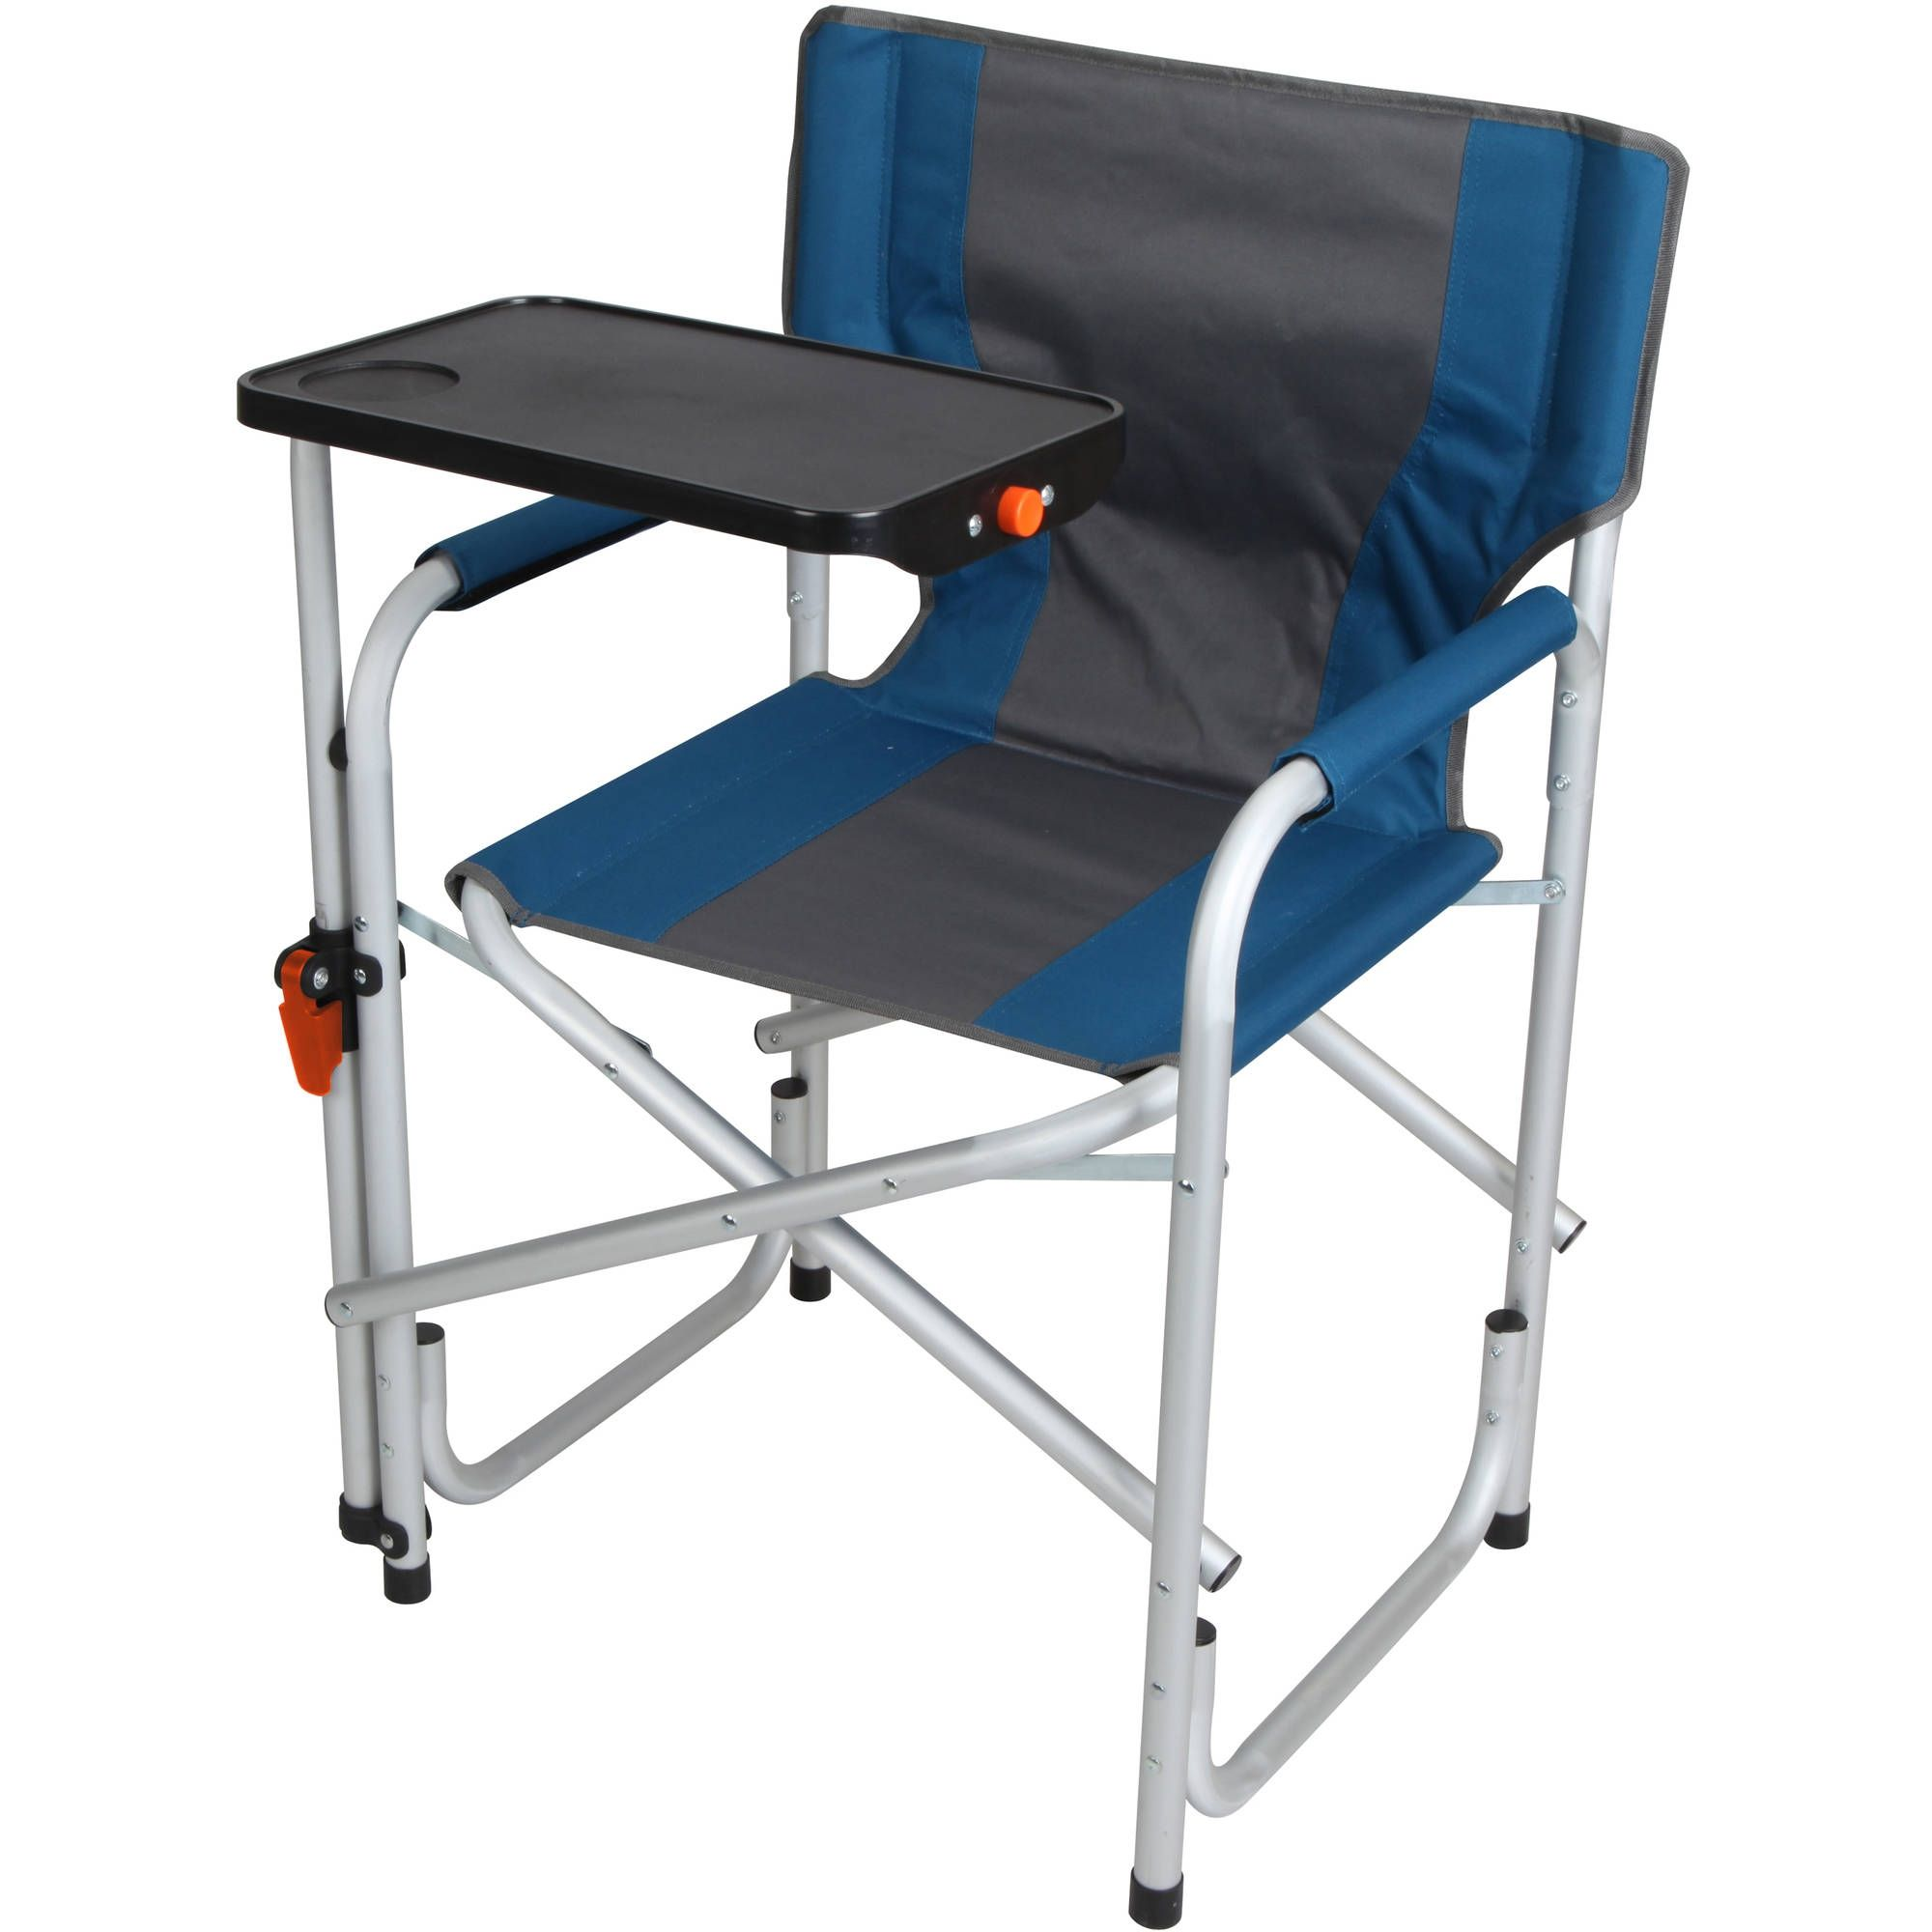 Incredible Folding Camping Chair With Attached Table Archivo 1 Inzonedesignstudio Interior Chair Design Inzonedesignstudiocom